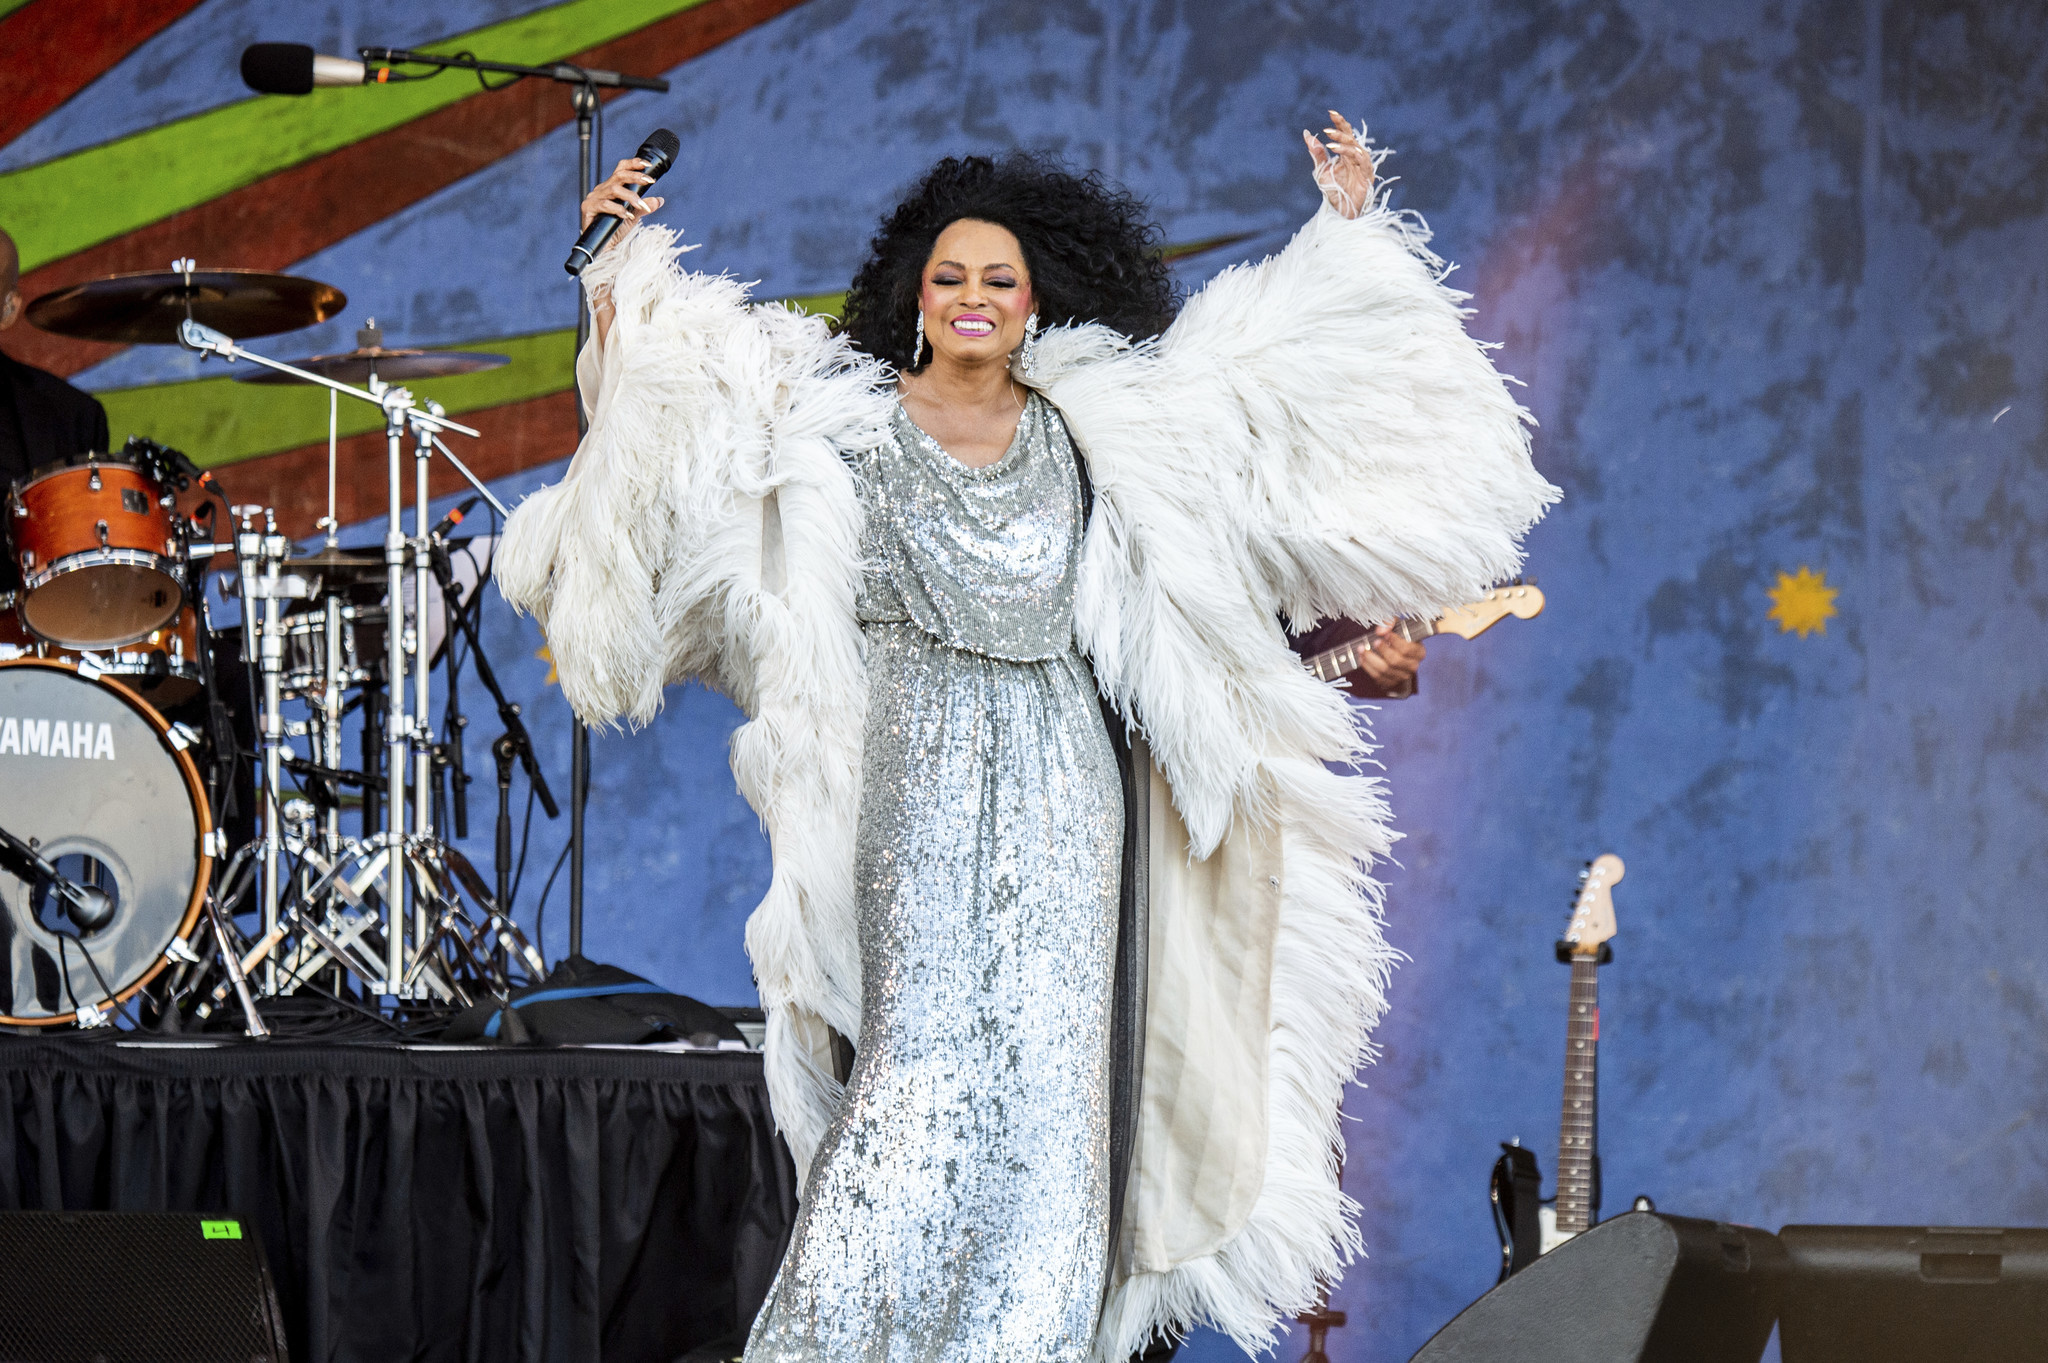 Hours before show, Diana Ross cancels Miami concerts due to coronavirus